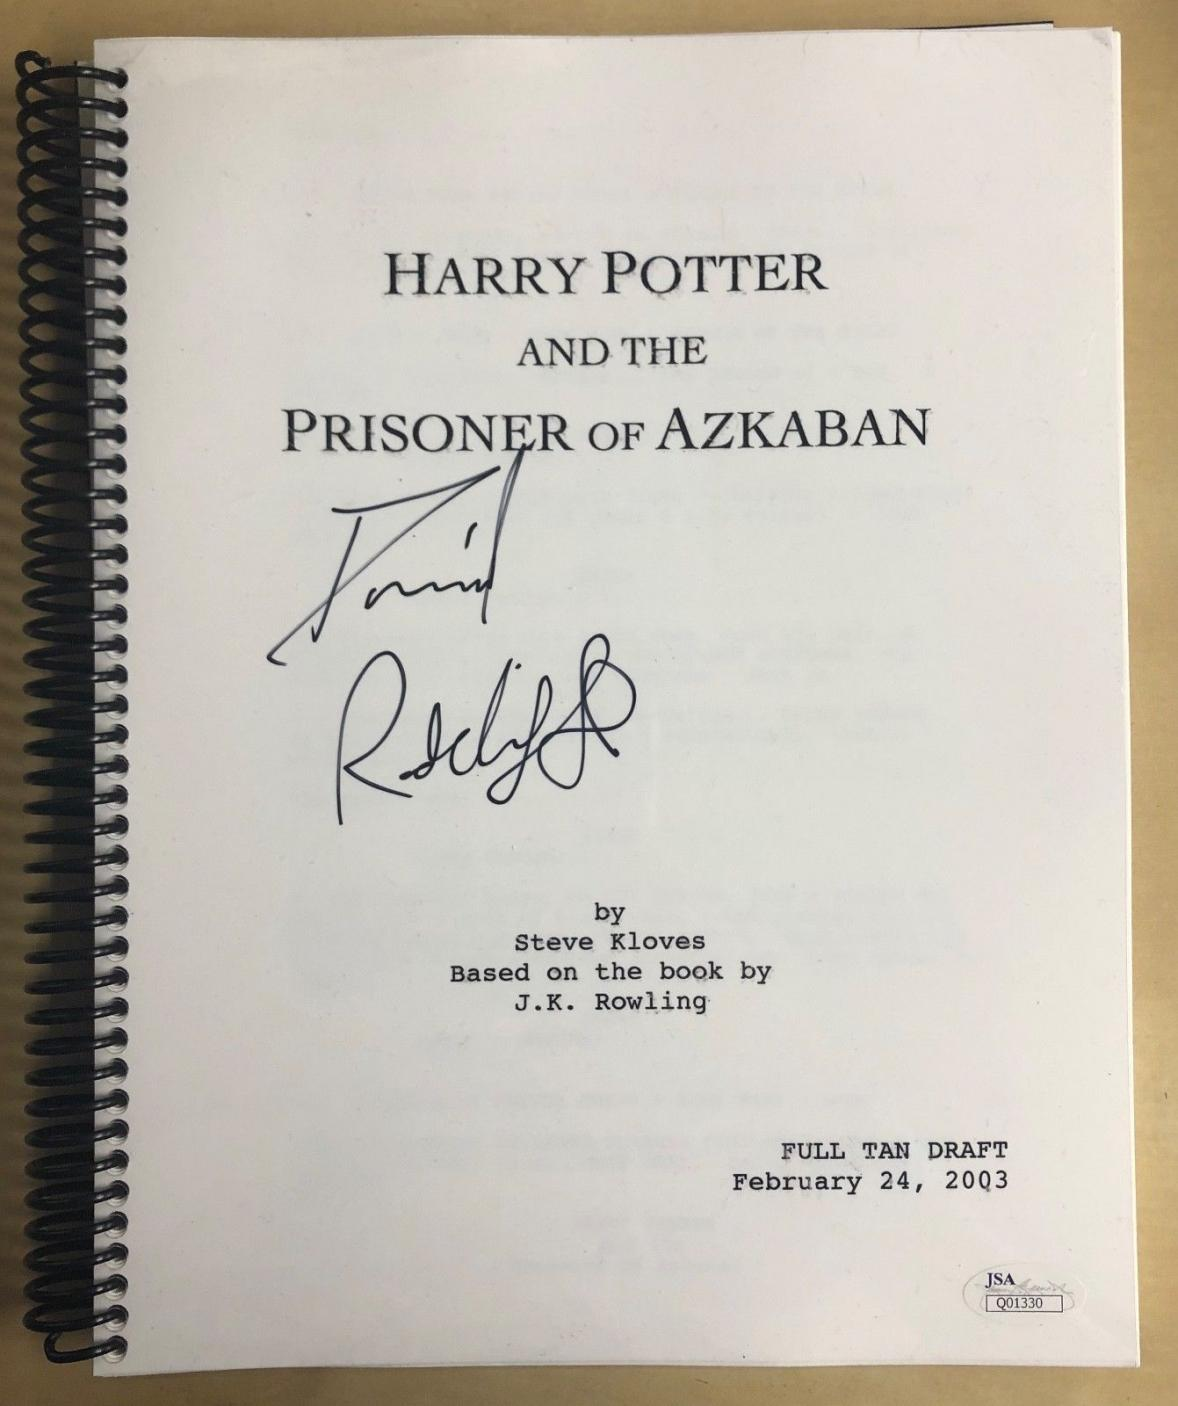 Daniel Radcliffe Signed Harry Potter & the Prisoner of Azkaban Movie Script JSA